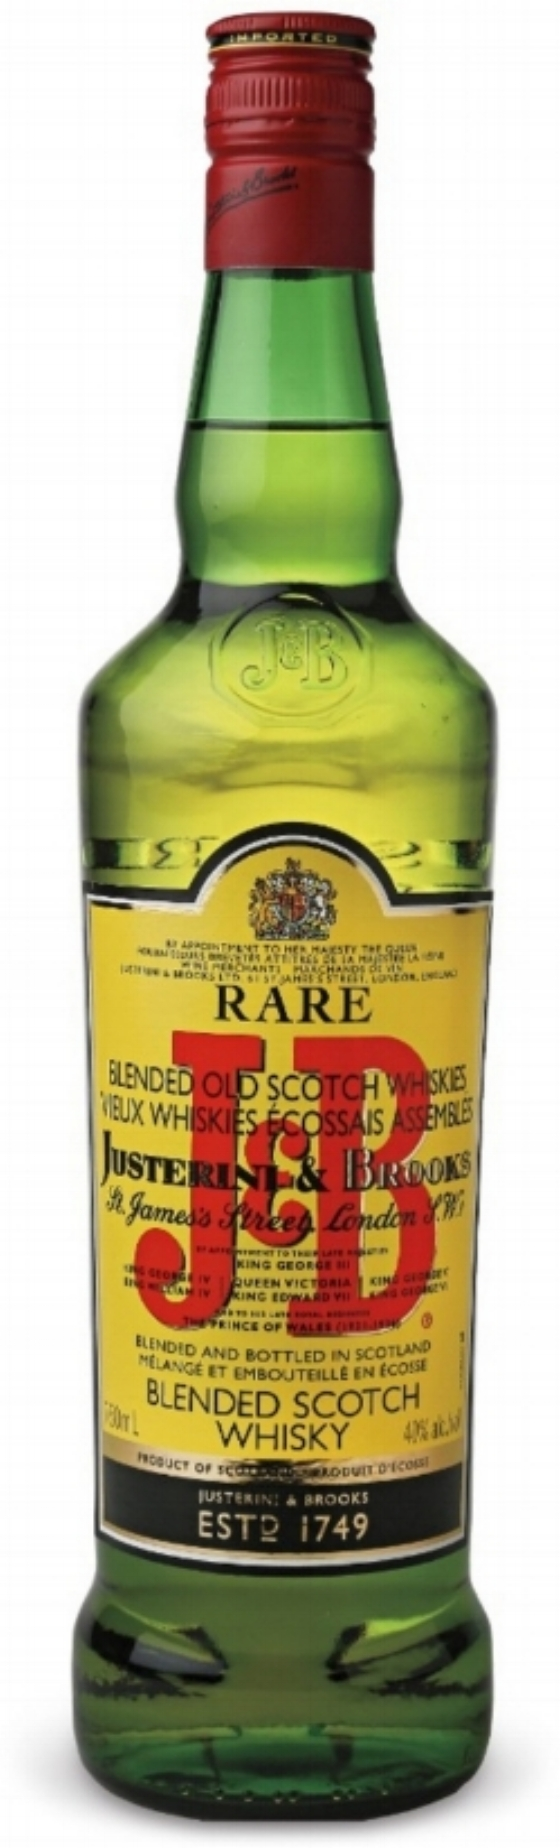 10. J&B Rare Blended Scotch Whisky